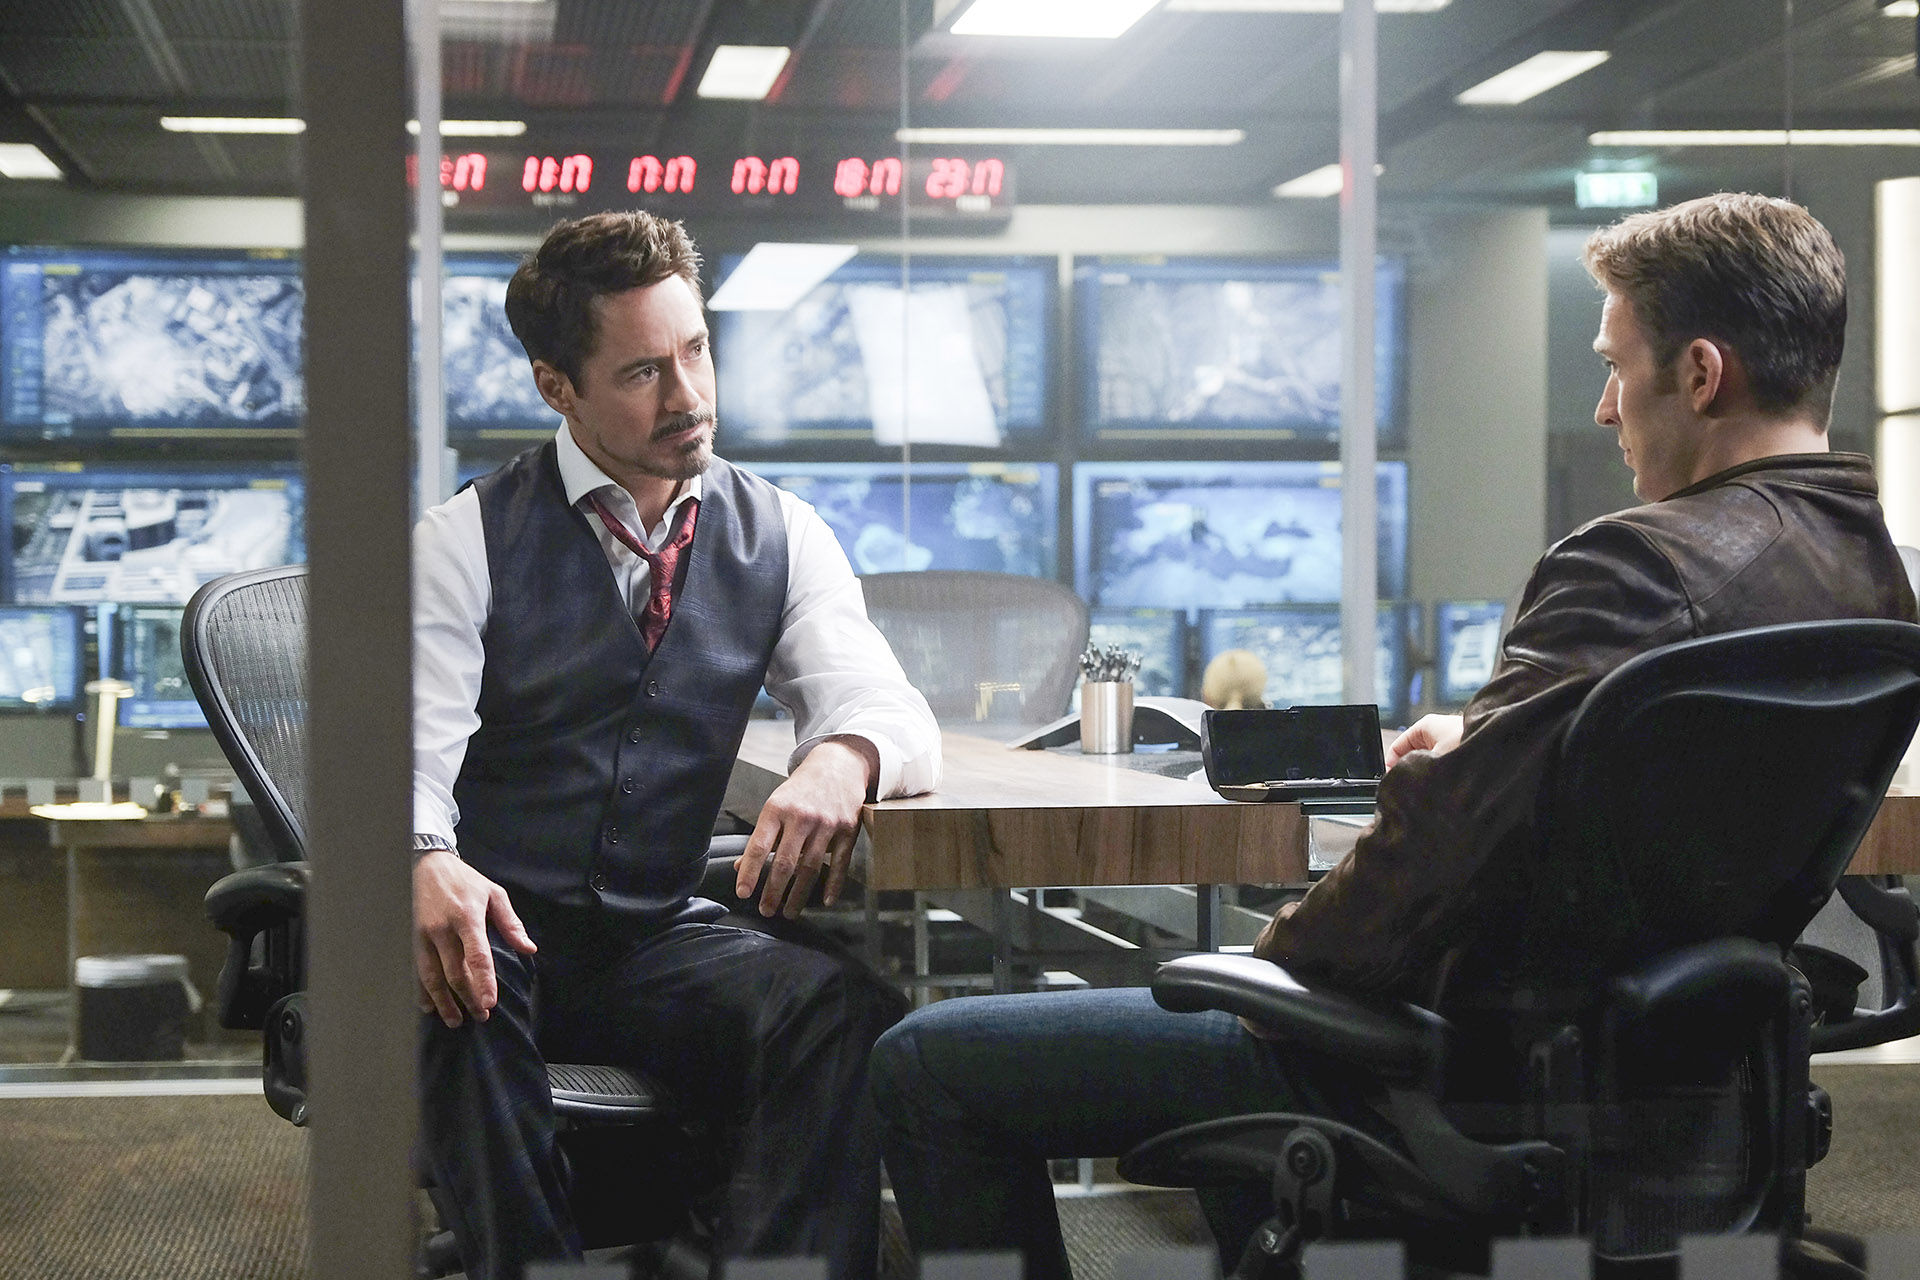 Captain-America-Civil-War-Tony-Stark-Meeting